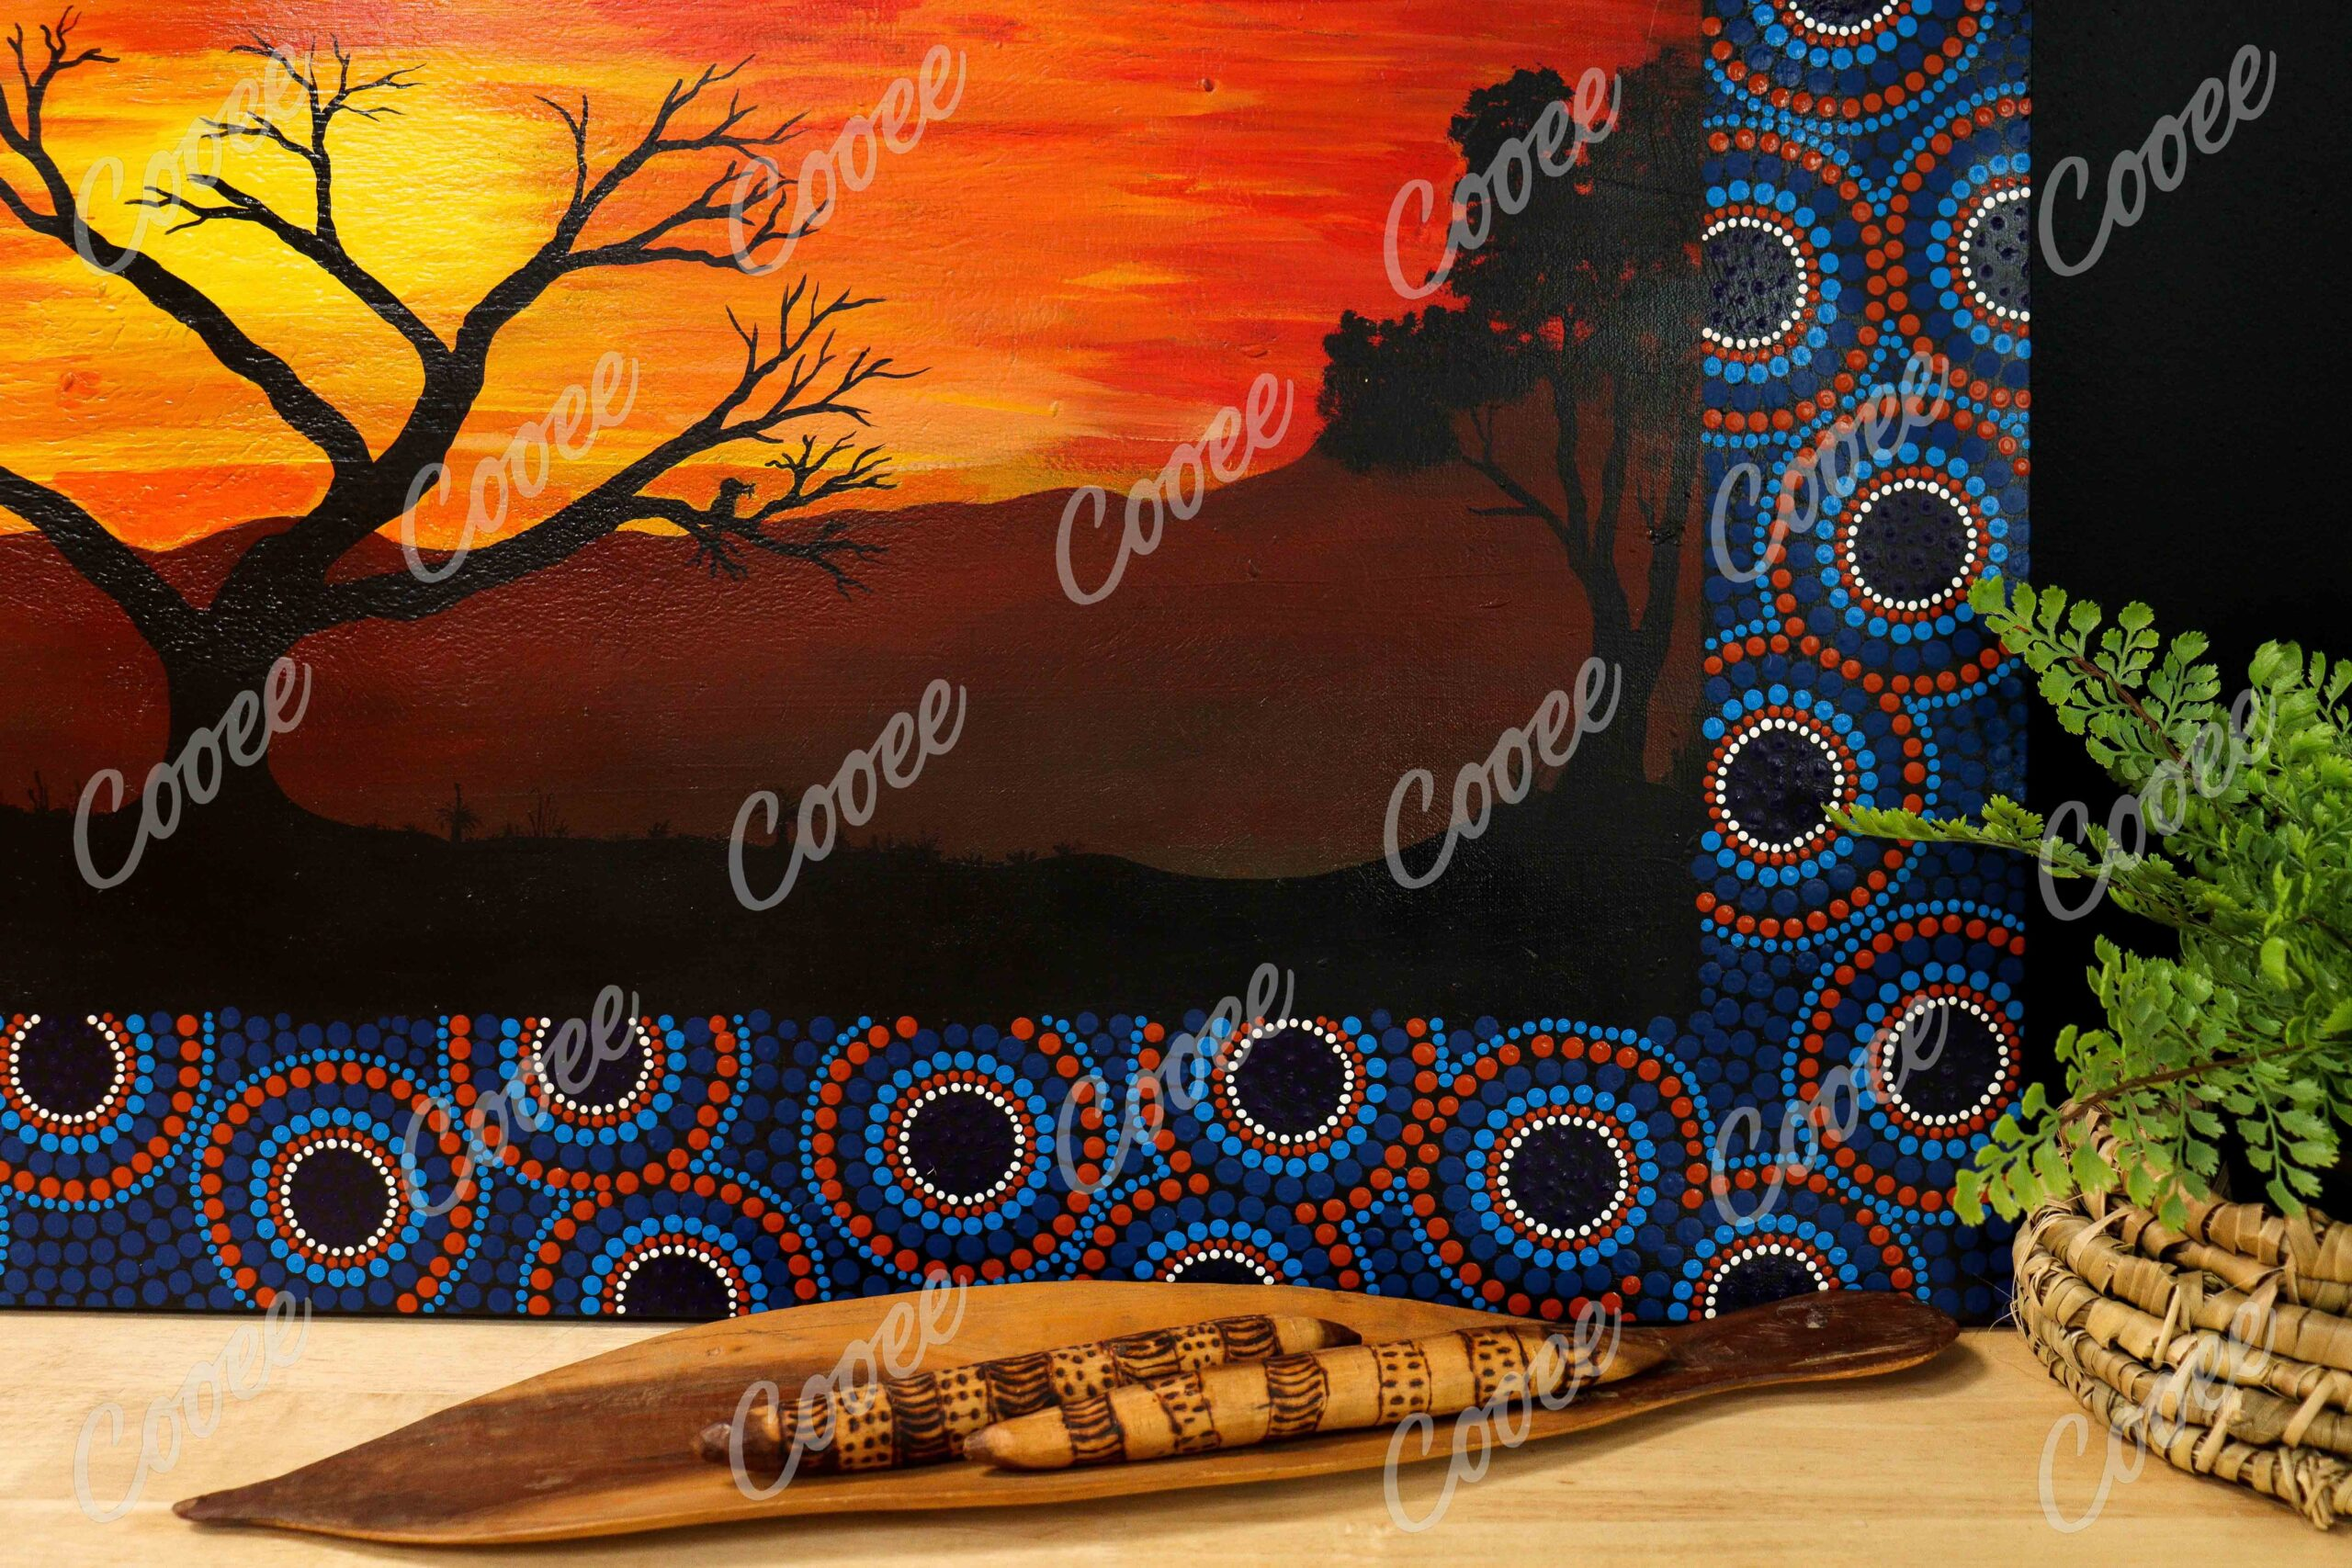 Cooee-Cafe-Original-Indigenous-Painting30